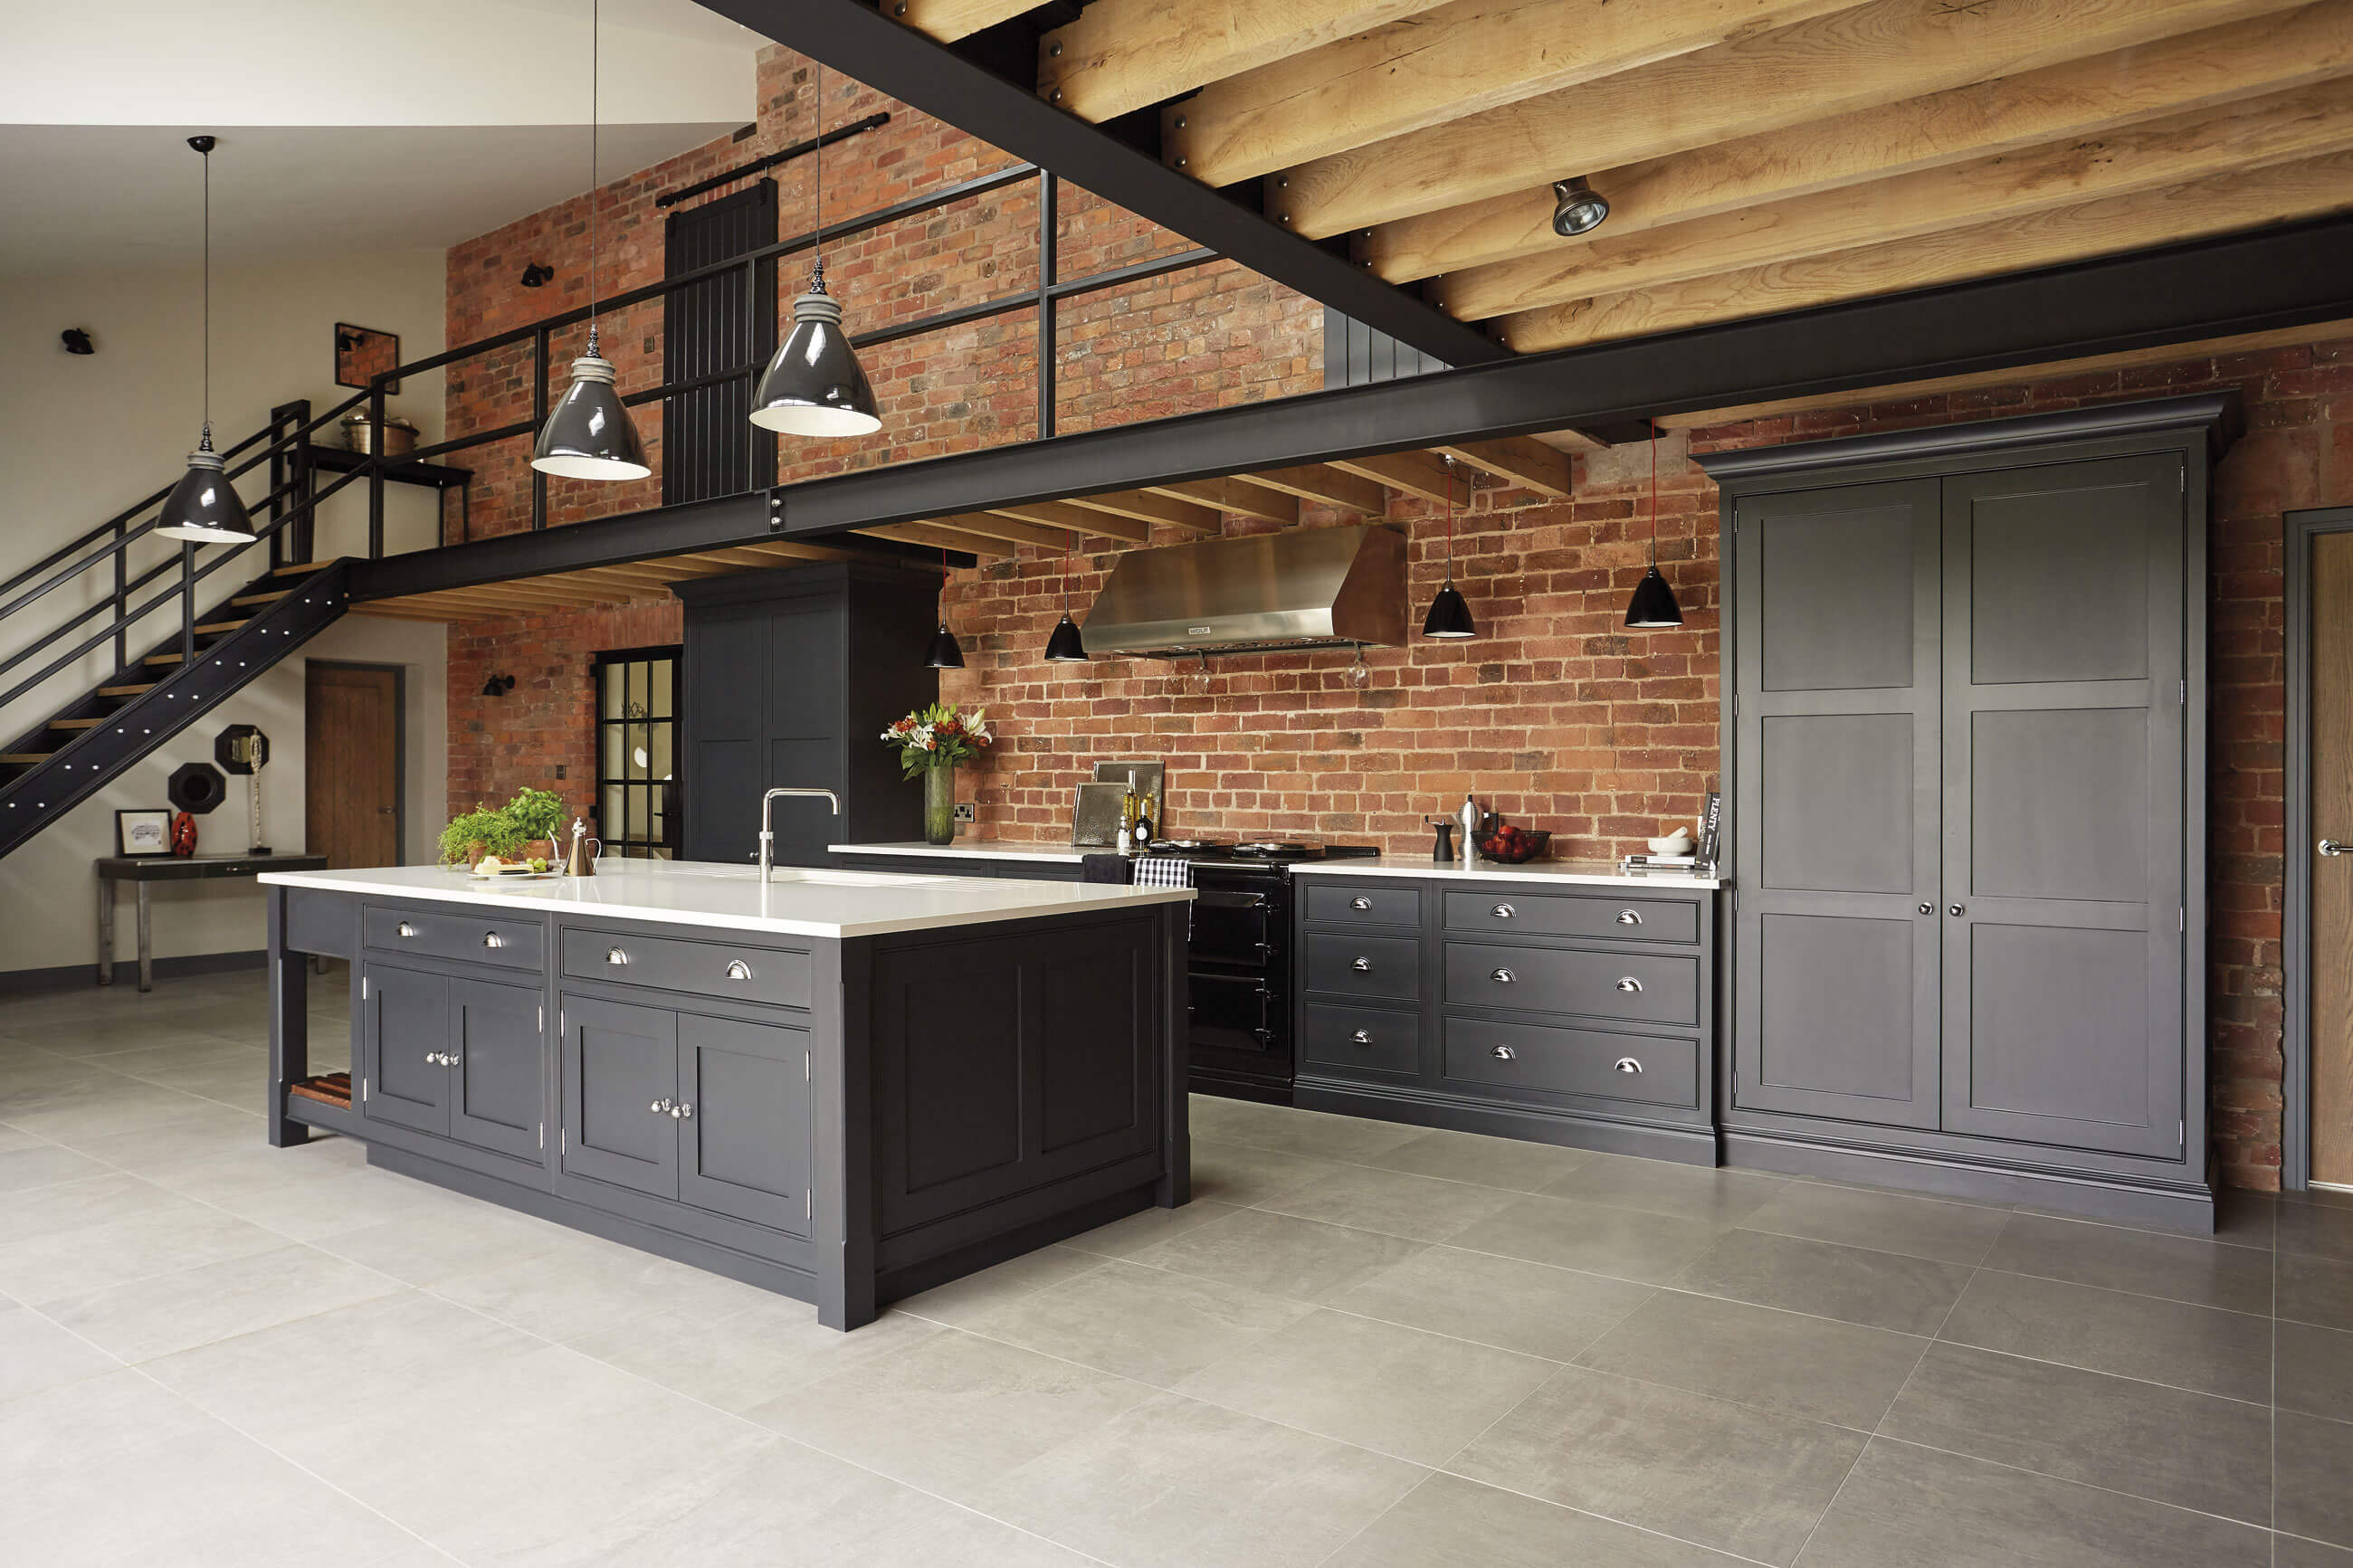 industrial style kitchen tom howley. Black Bedroom Furniture Sets. Home Design Ideas